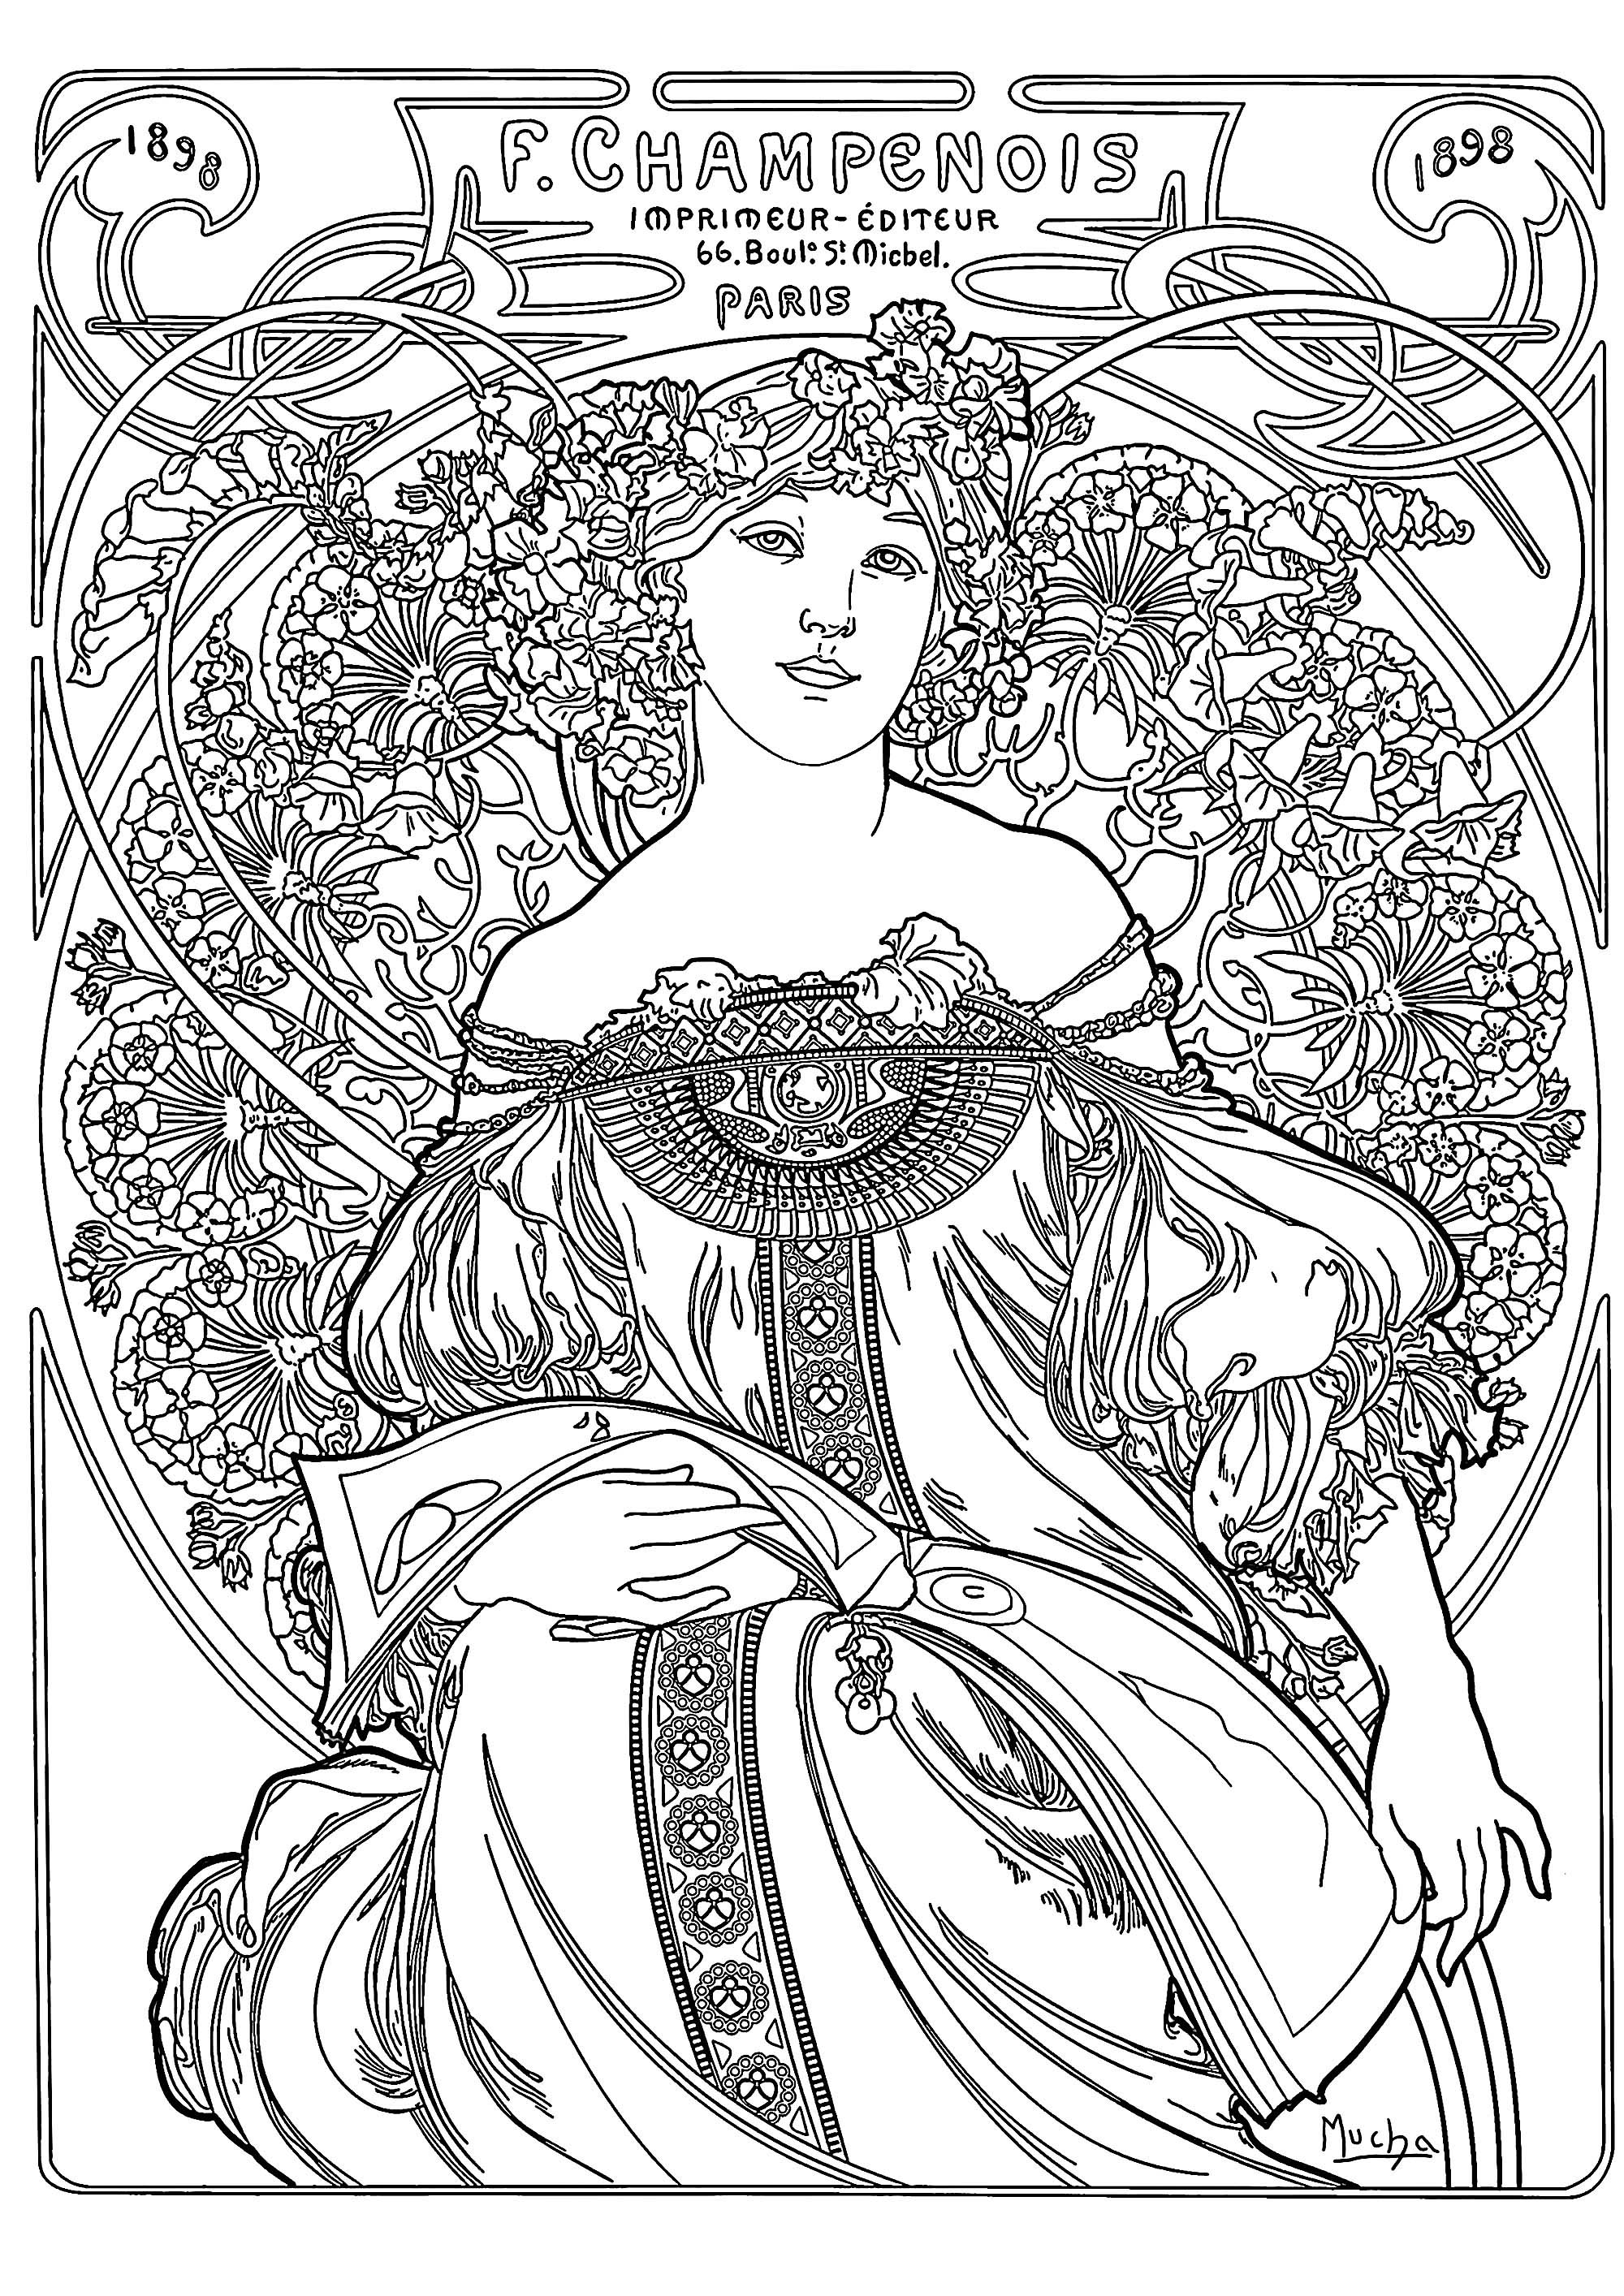 Coloring page created from a poster by Alfons Mucha for 'F. Champenois Imprimeur-Editeur Paris' (1897)